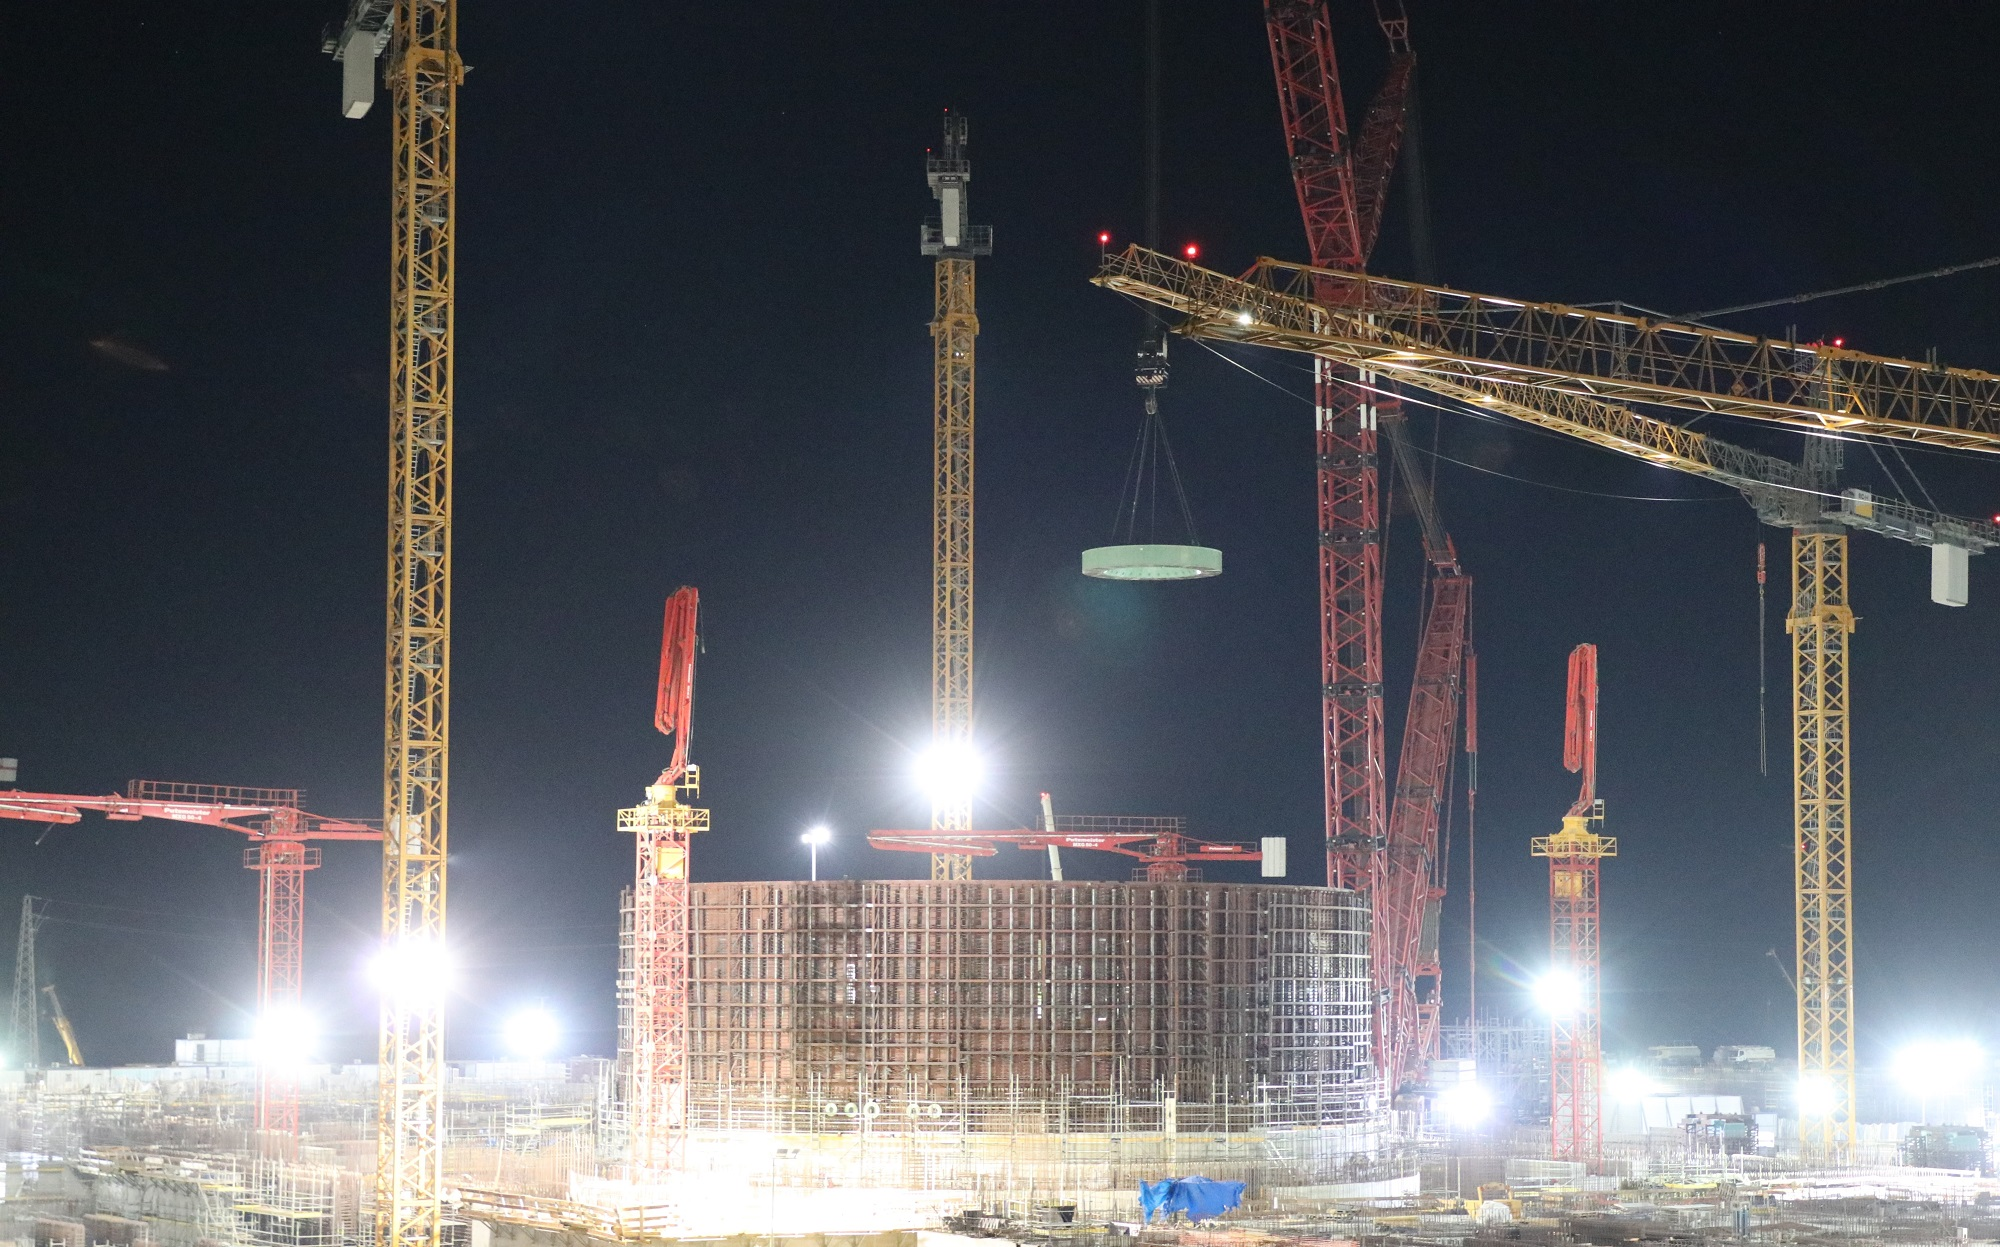 The reactor cavity in power unit 2 of the Akkuyu NPP under construction in Turkey has been equipped with the main structural components